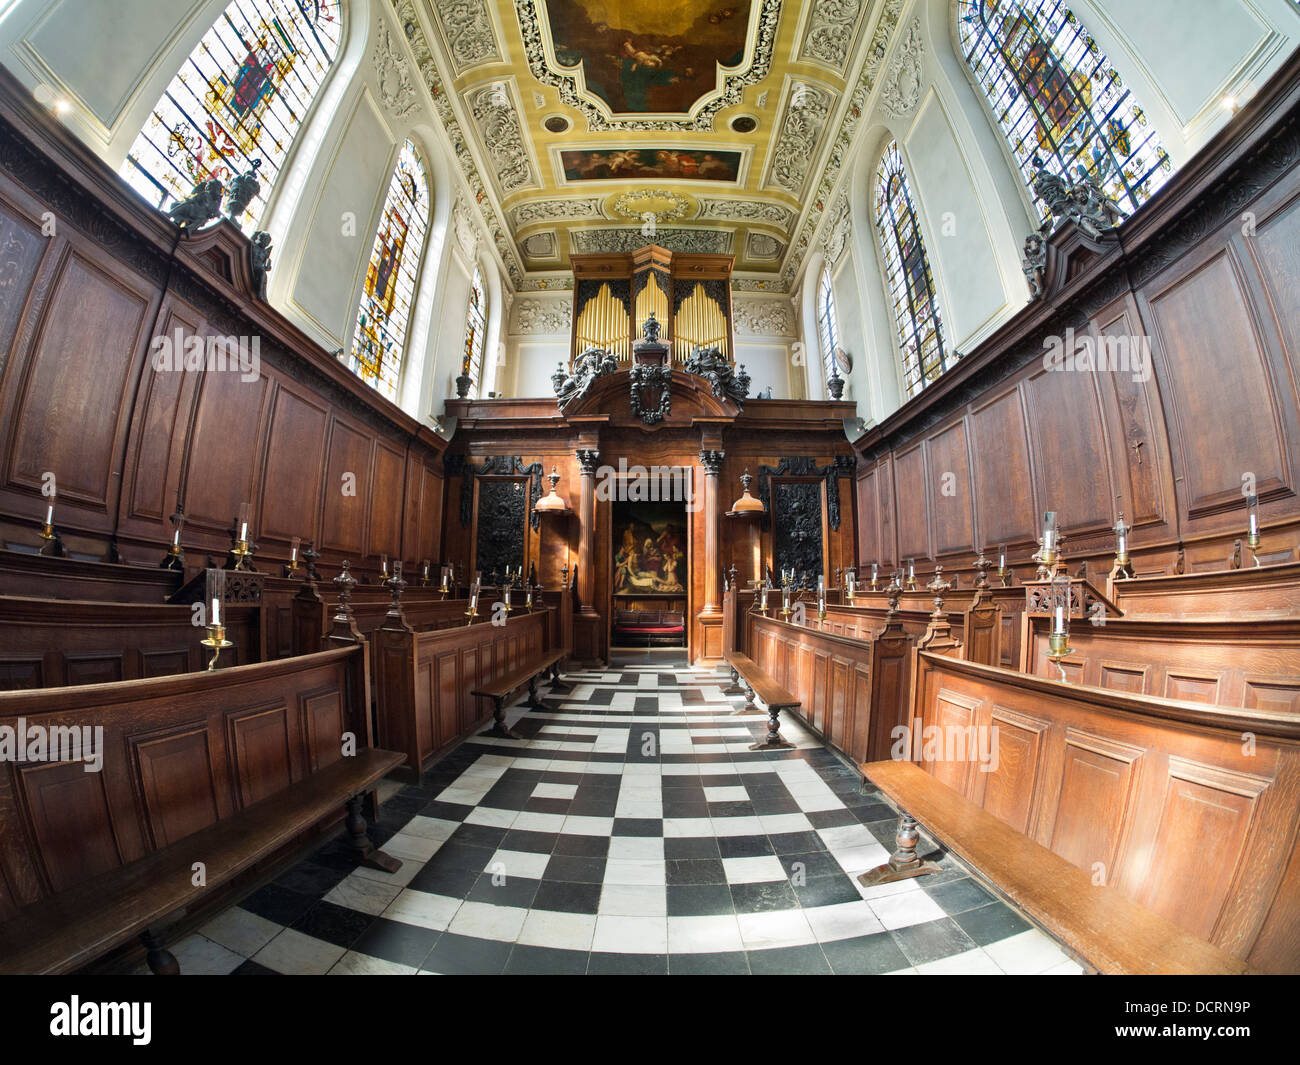 The Chapel of Trinity College, Oxford - fisheye view 4 - Stock Image